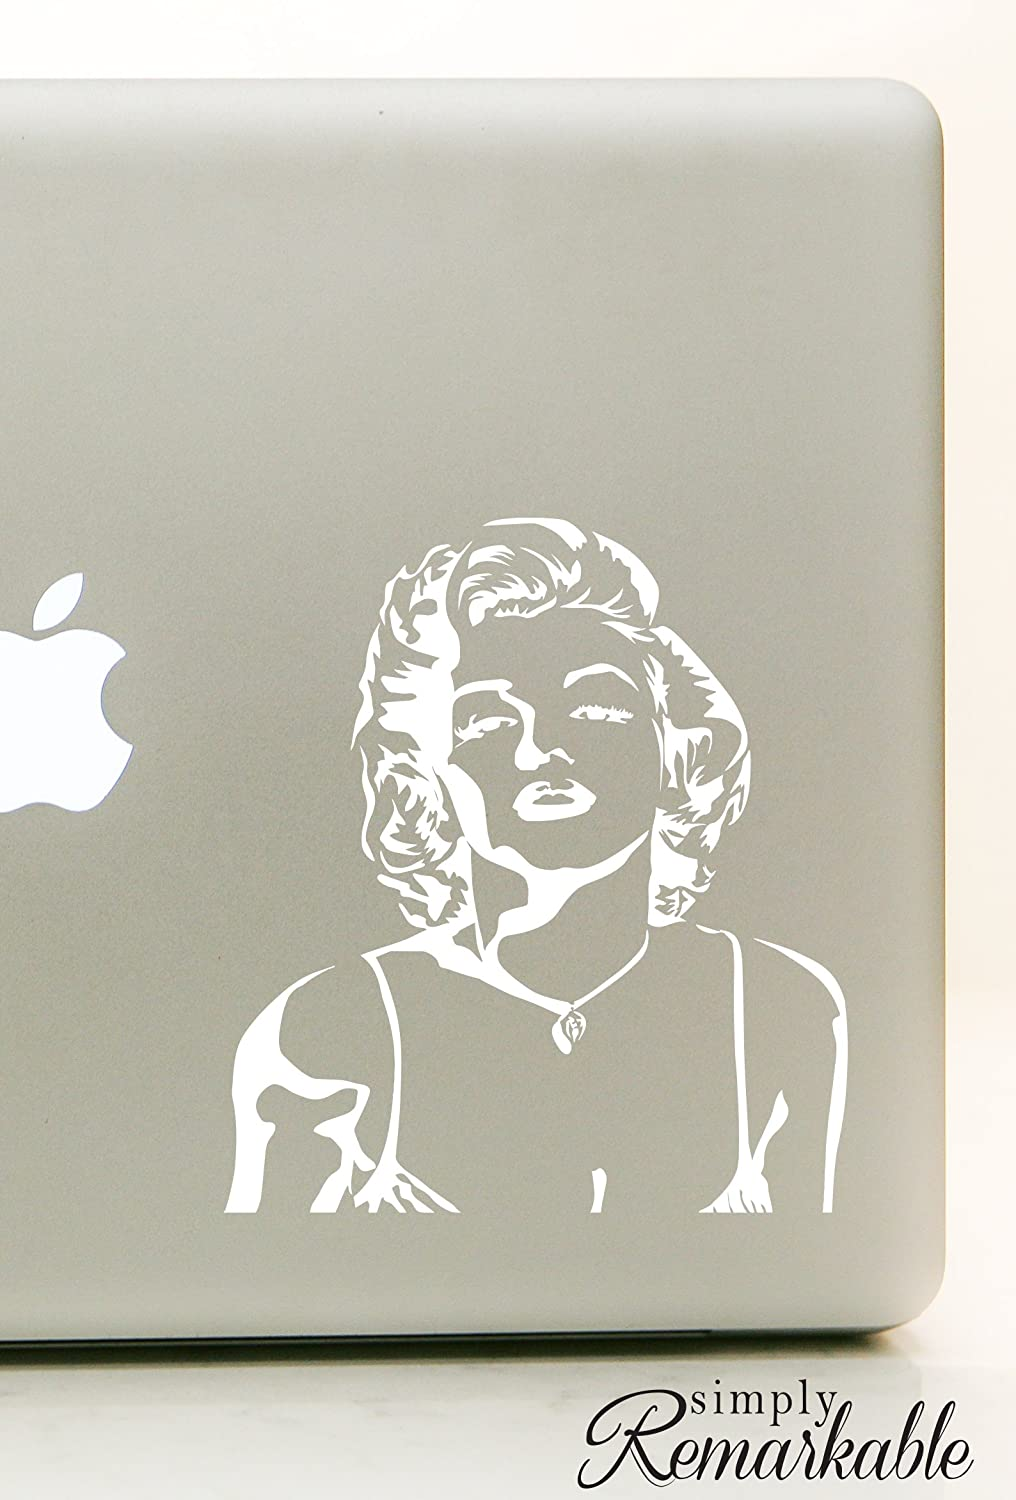 Macbook sticker decal car truck sticker cute puppy dog bumper sticker decal I/'m selfish impatient and a little insecure Marilyn Monroe